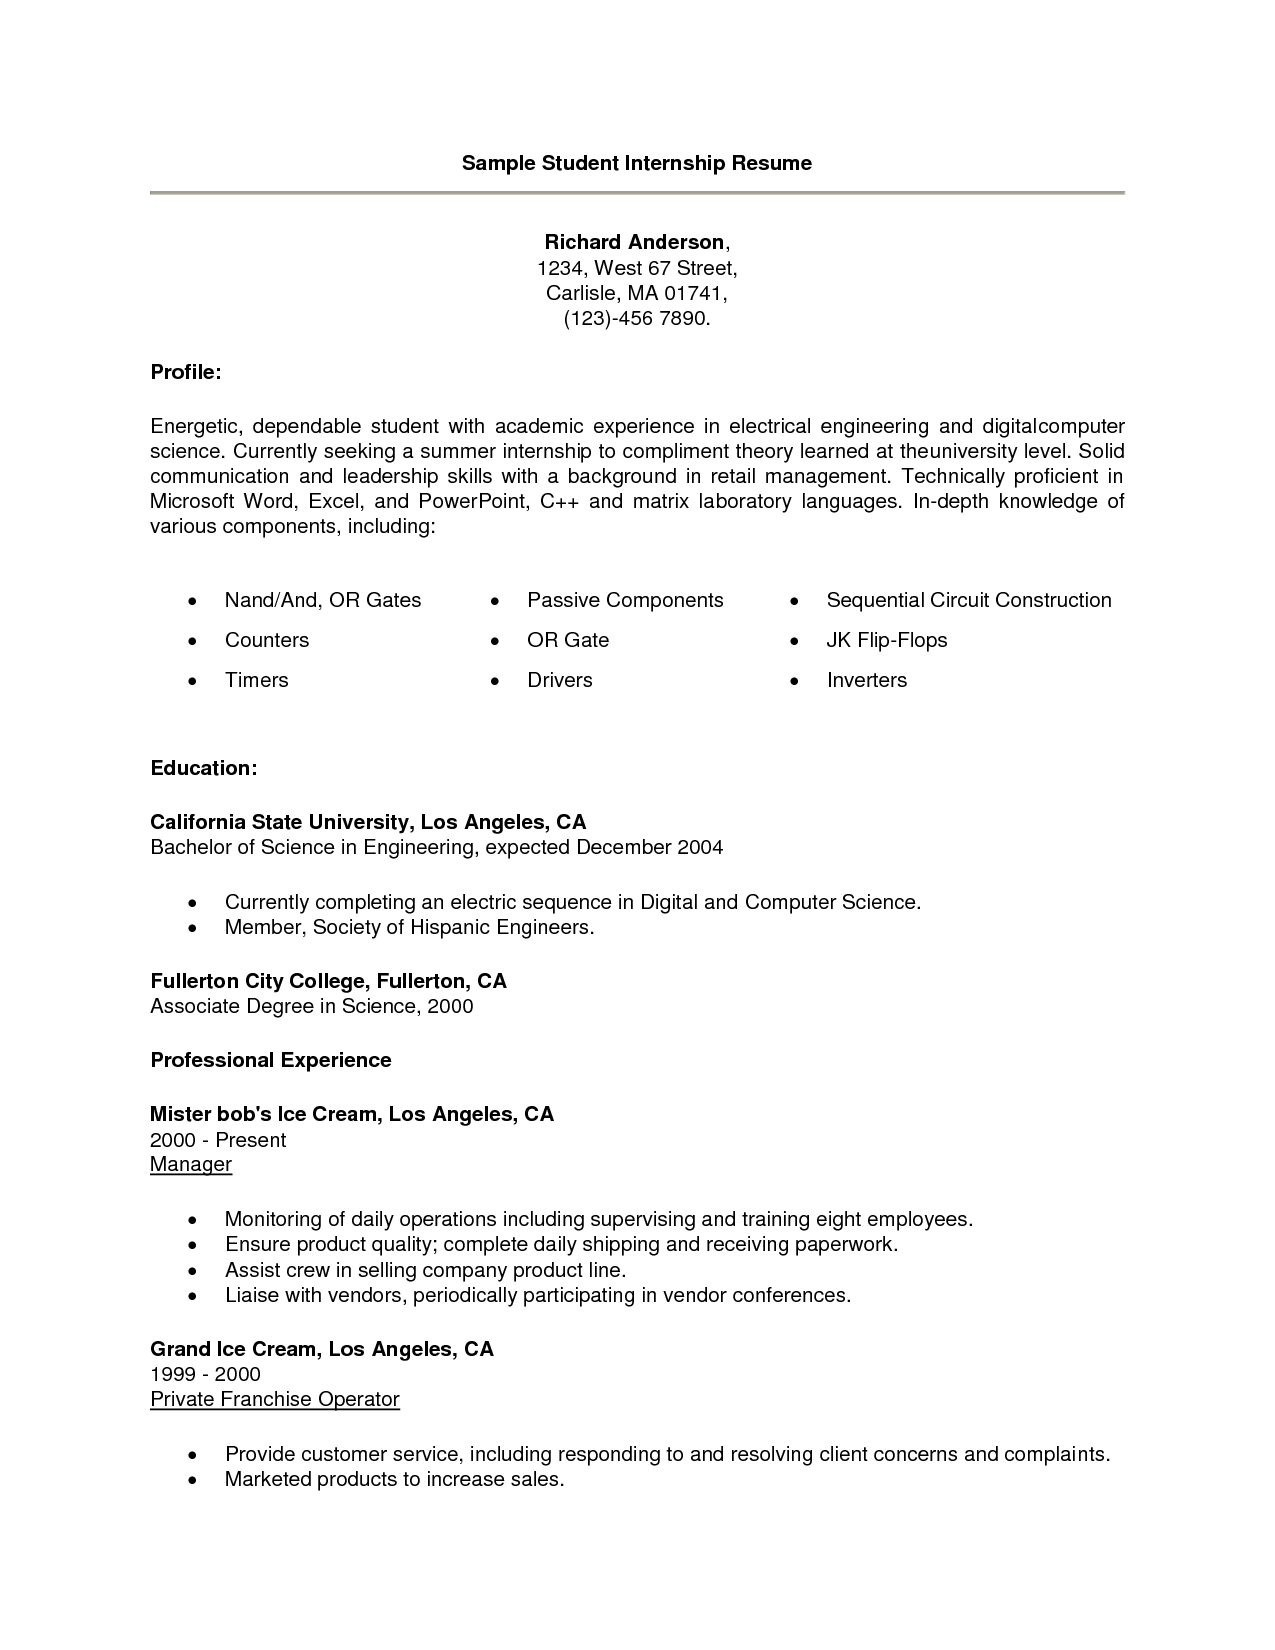 Internship Resume Template Microsoft Word - Internship Resume Template Fresh Luxury Grapher Resume Sample